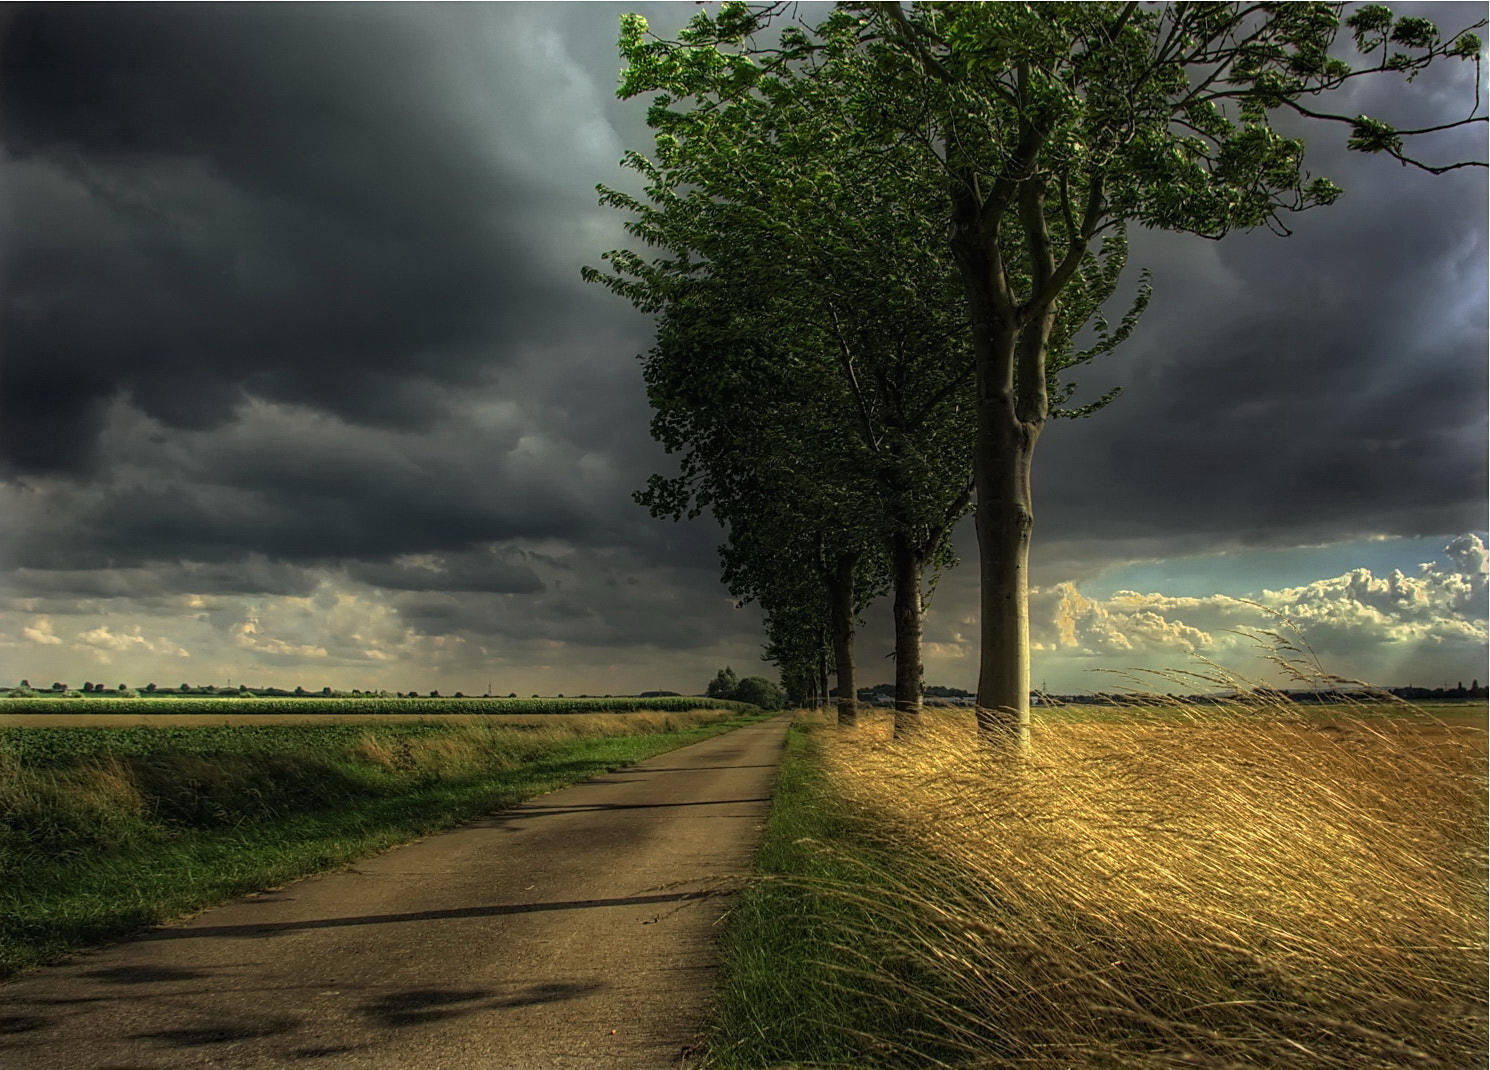 Photograph LIGHT IN THE WIND by Kersten Studenski on 500px